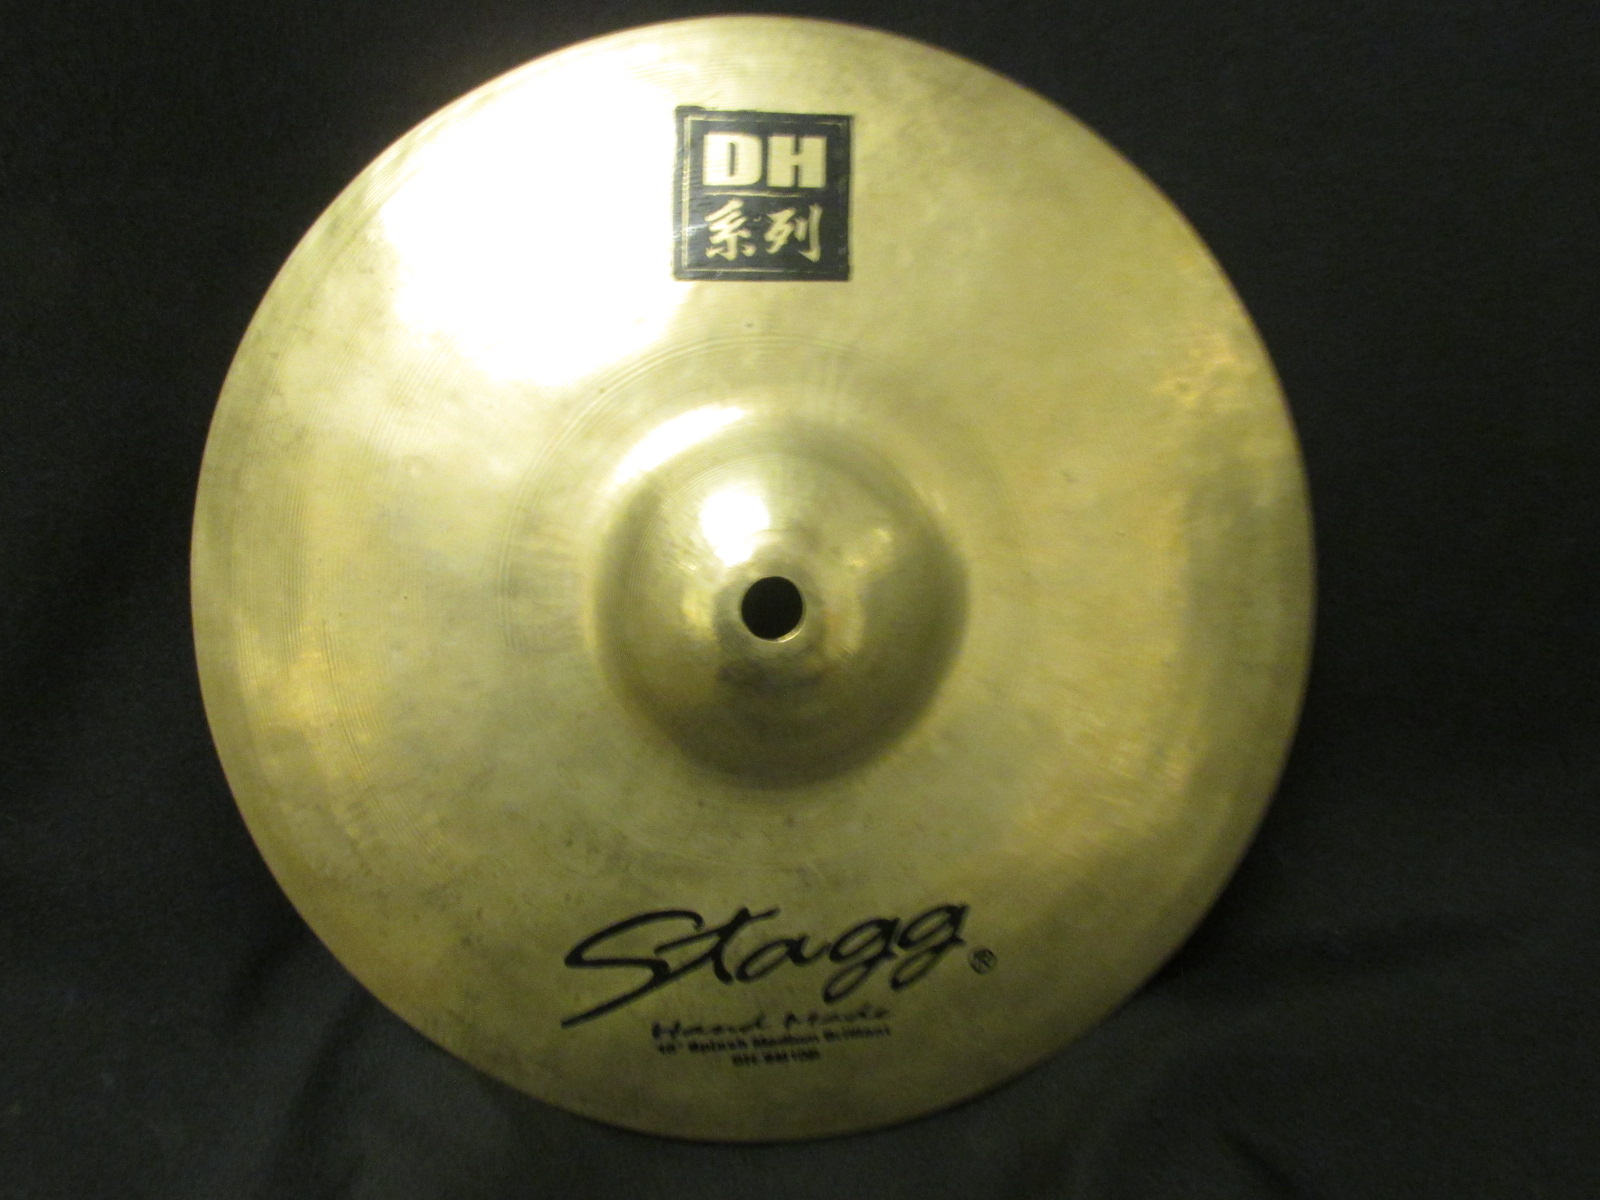 Stagg - DH-8M10B